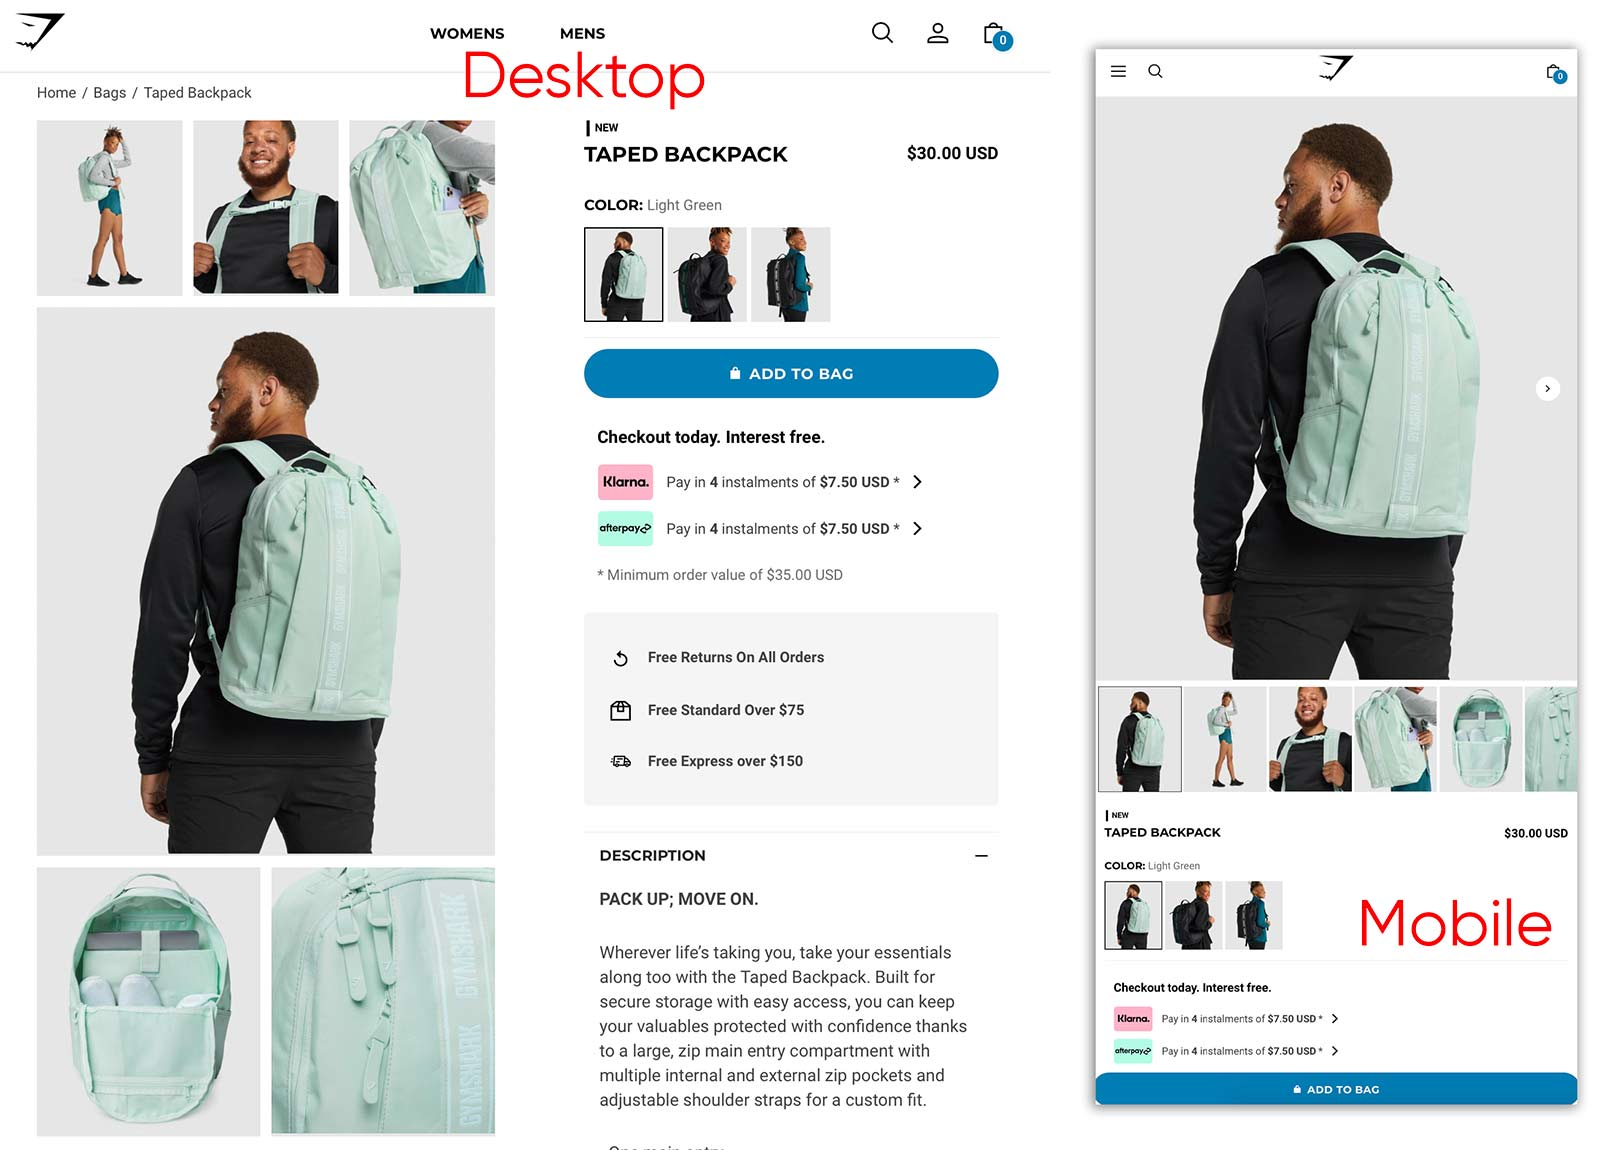 Gymshark backpack product page, showing several product use images in a grid